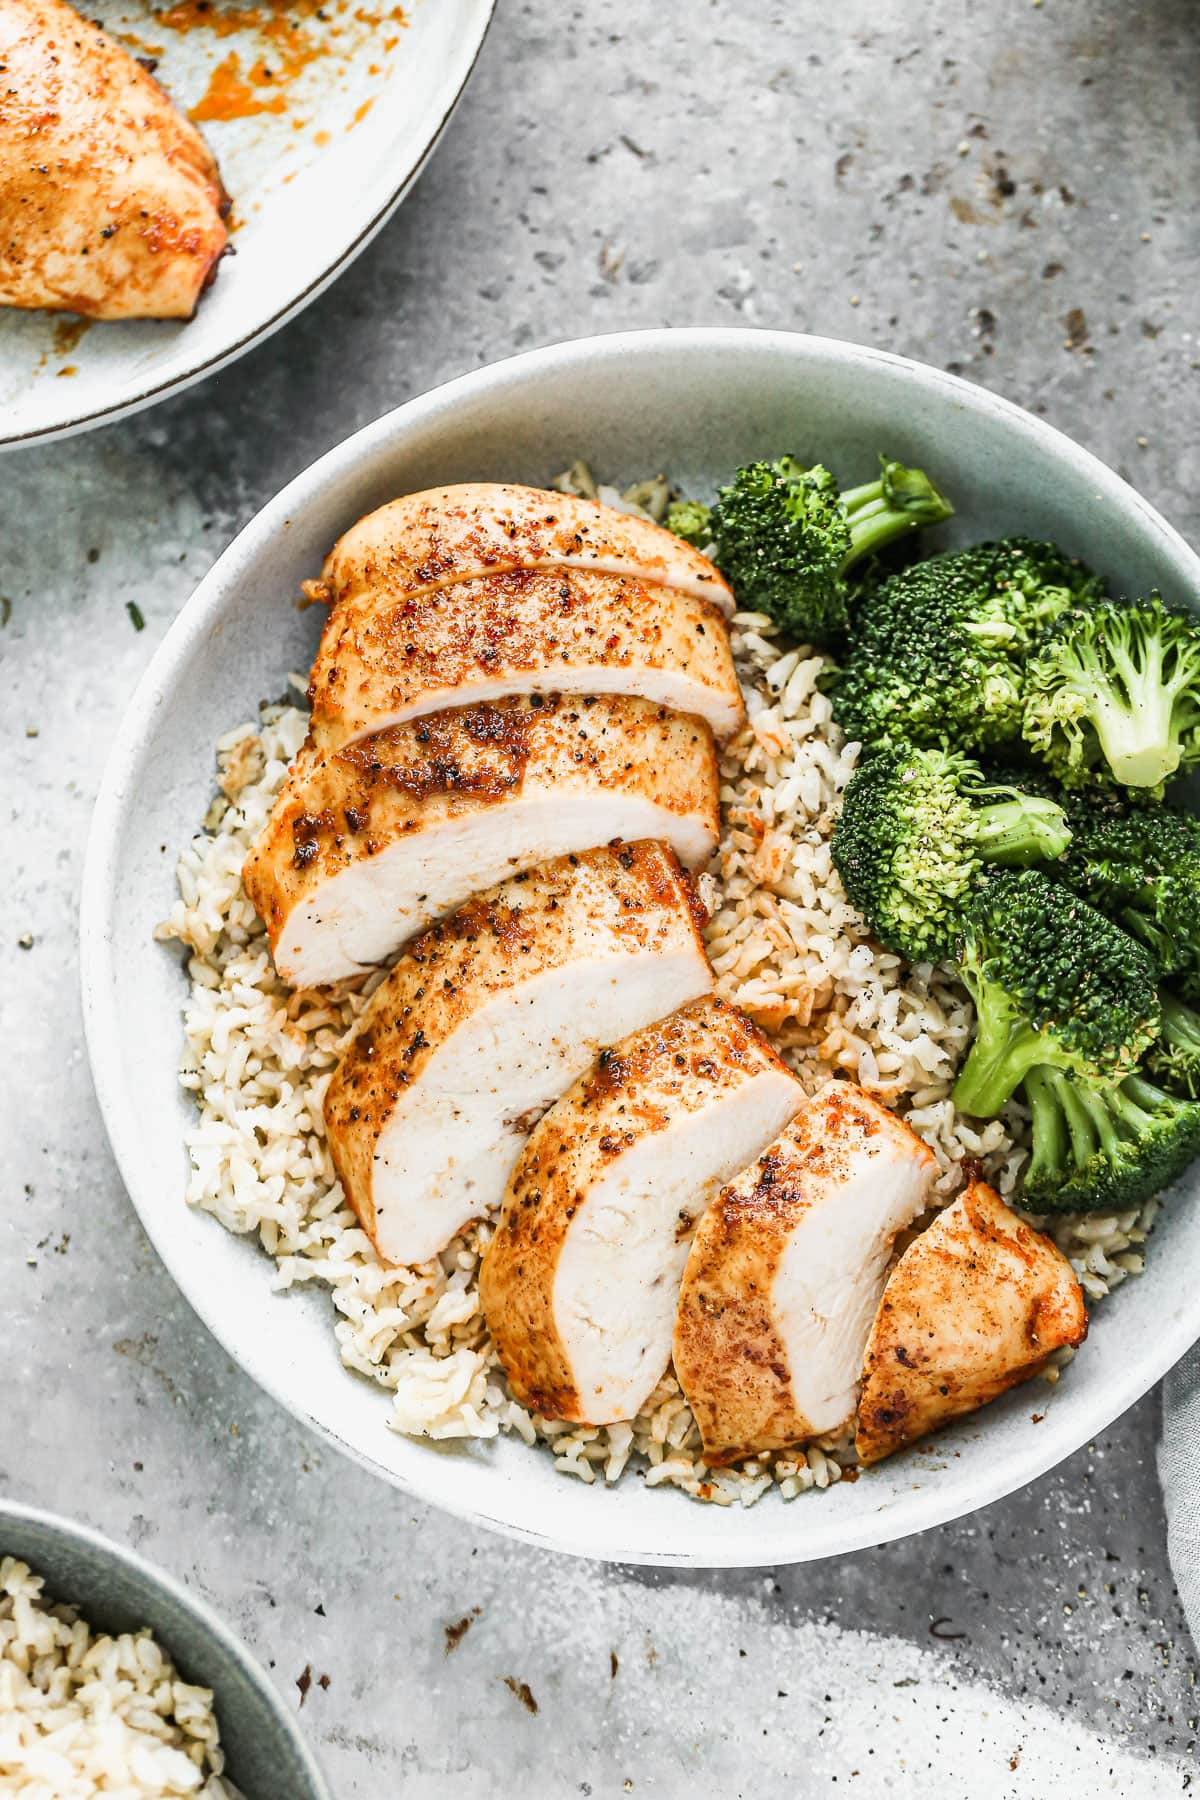 A sliced chicken breast with rice and broccoli